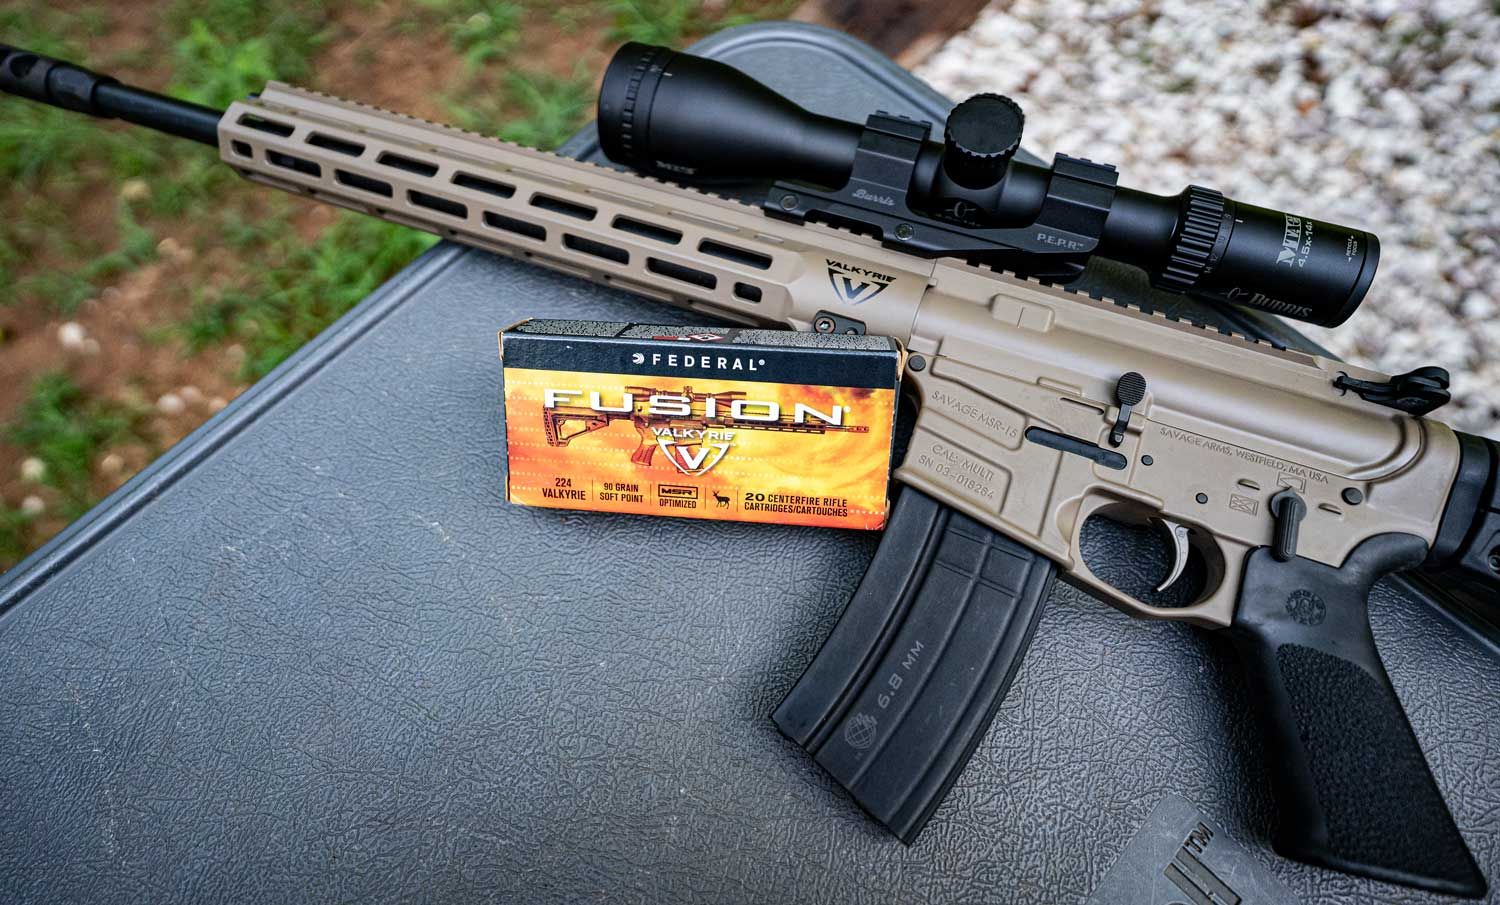 .224 Valkyrie carbine with Federal Fusion ammo on a shooting bench